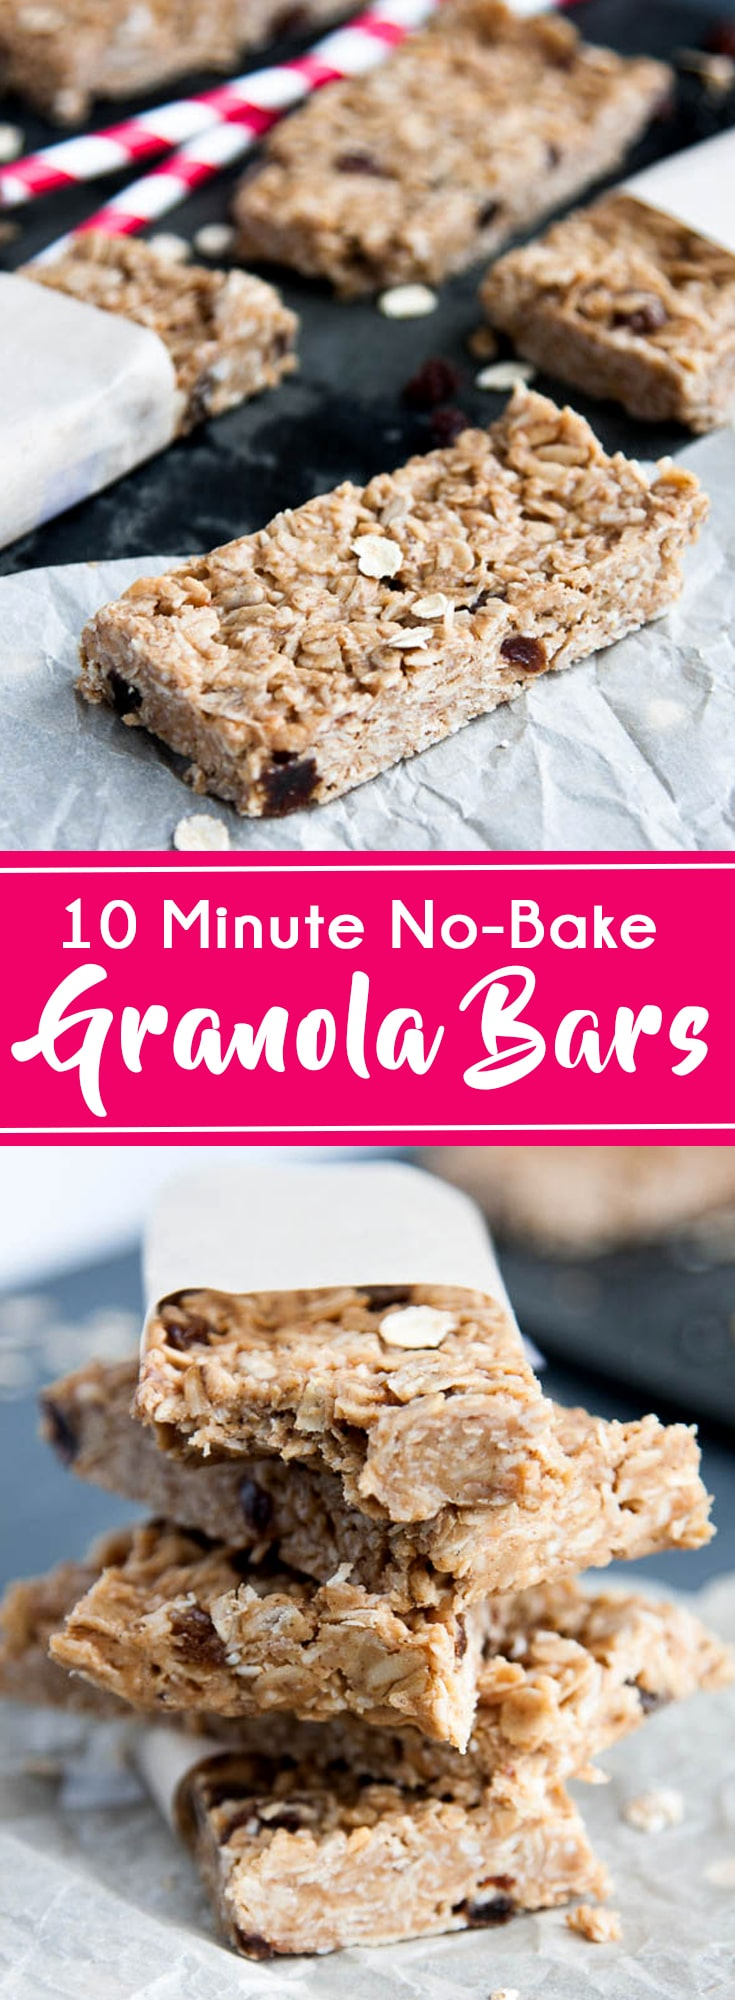 6 ingredients, one bowl, no bake Peanut Butter Oatmeal Granola Bars. You need this recipe!